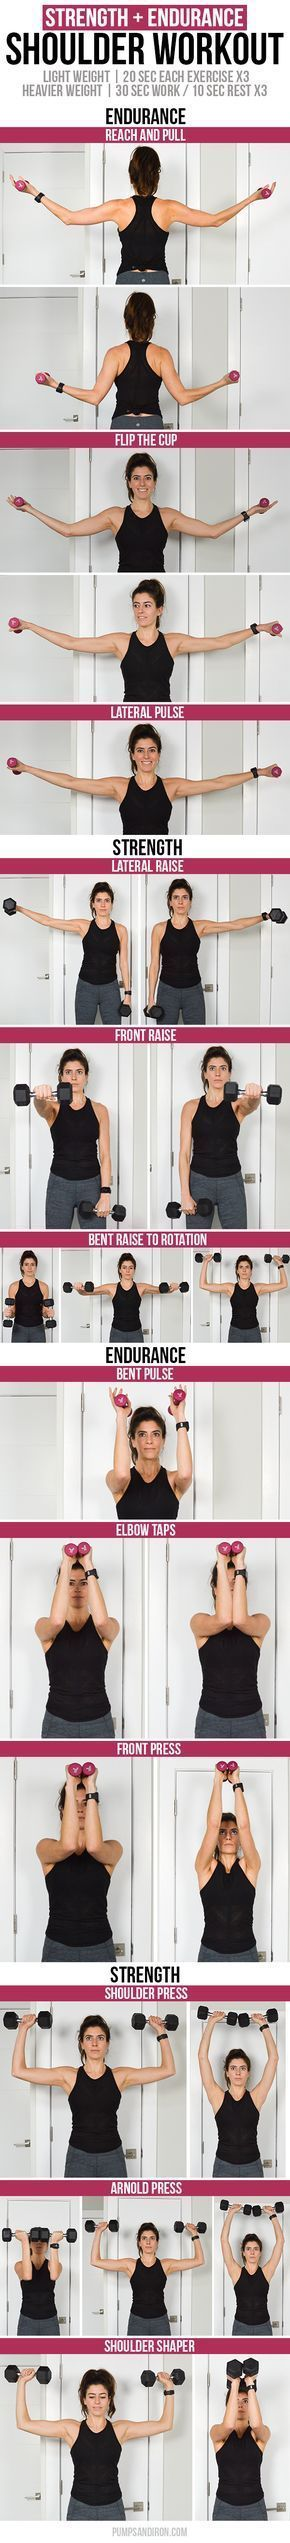 Upper body workout   Posted By: CustomWeightLossProgram.com